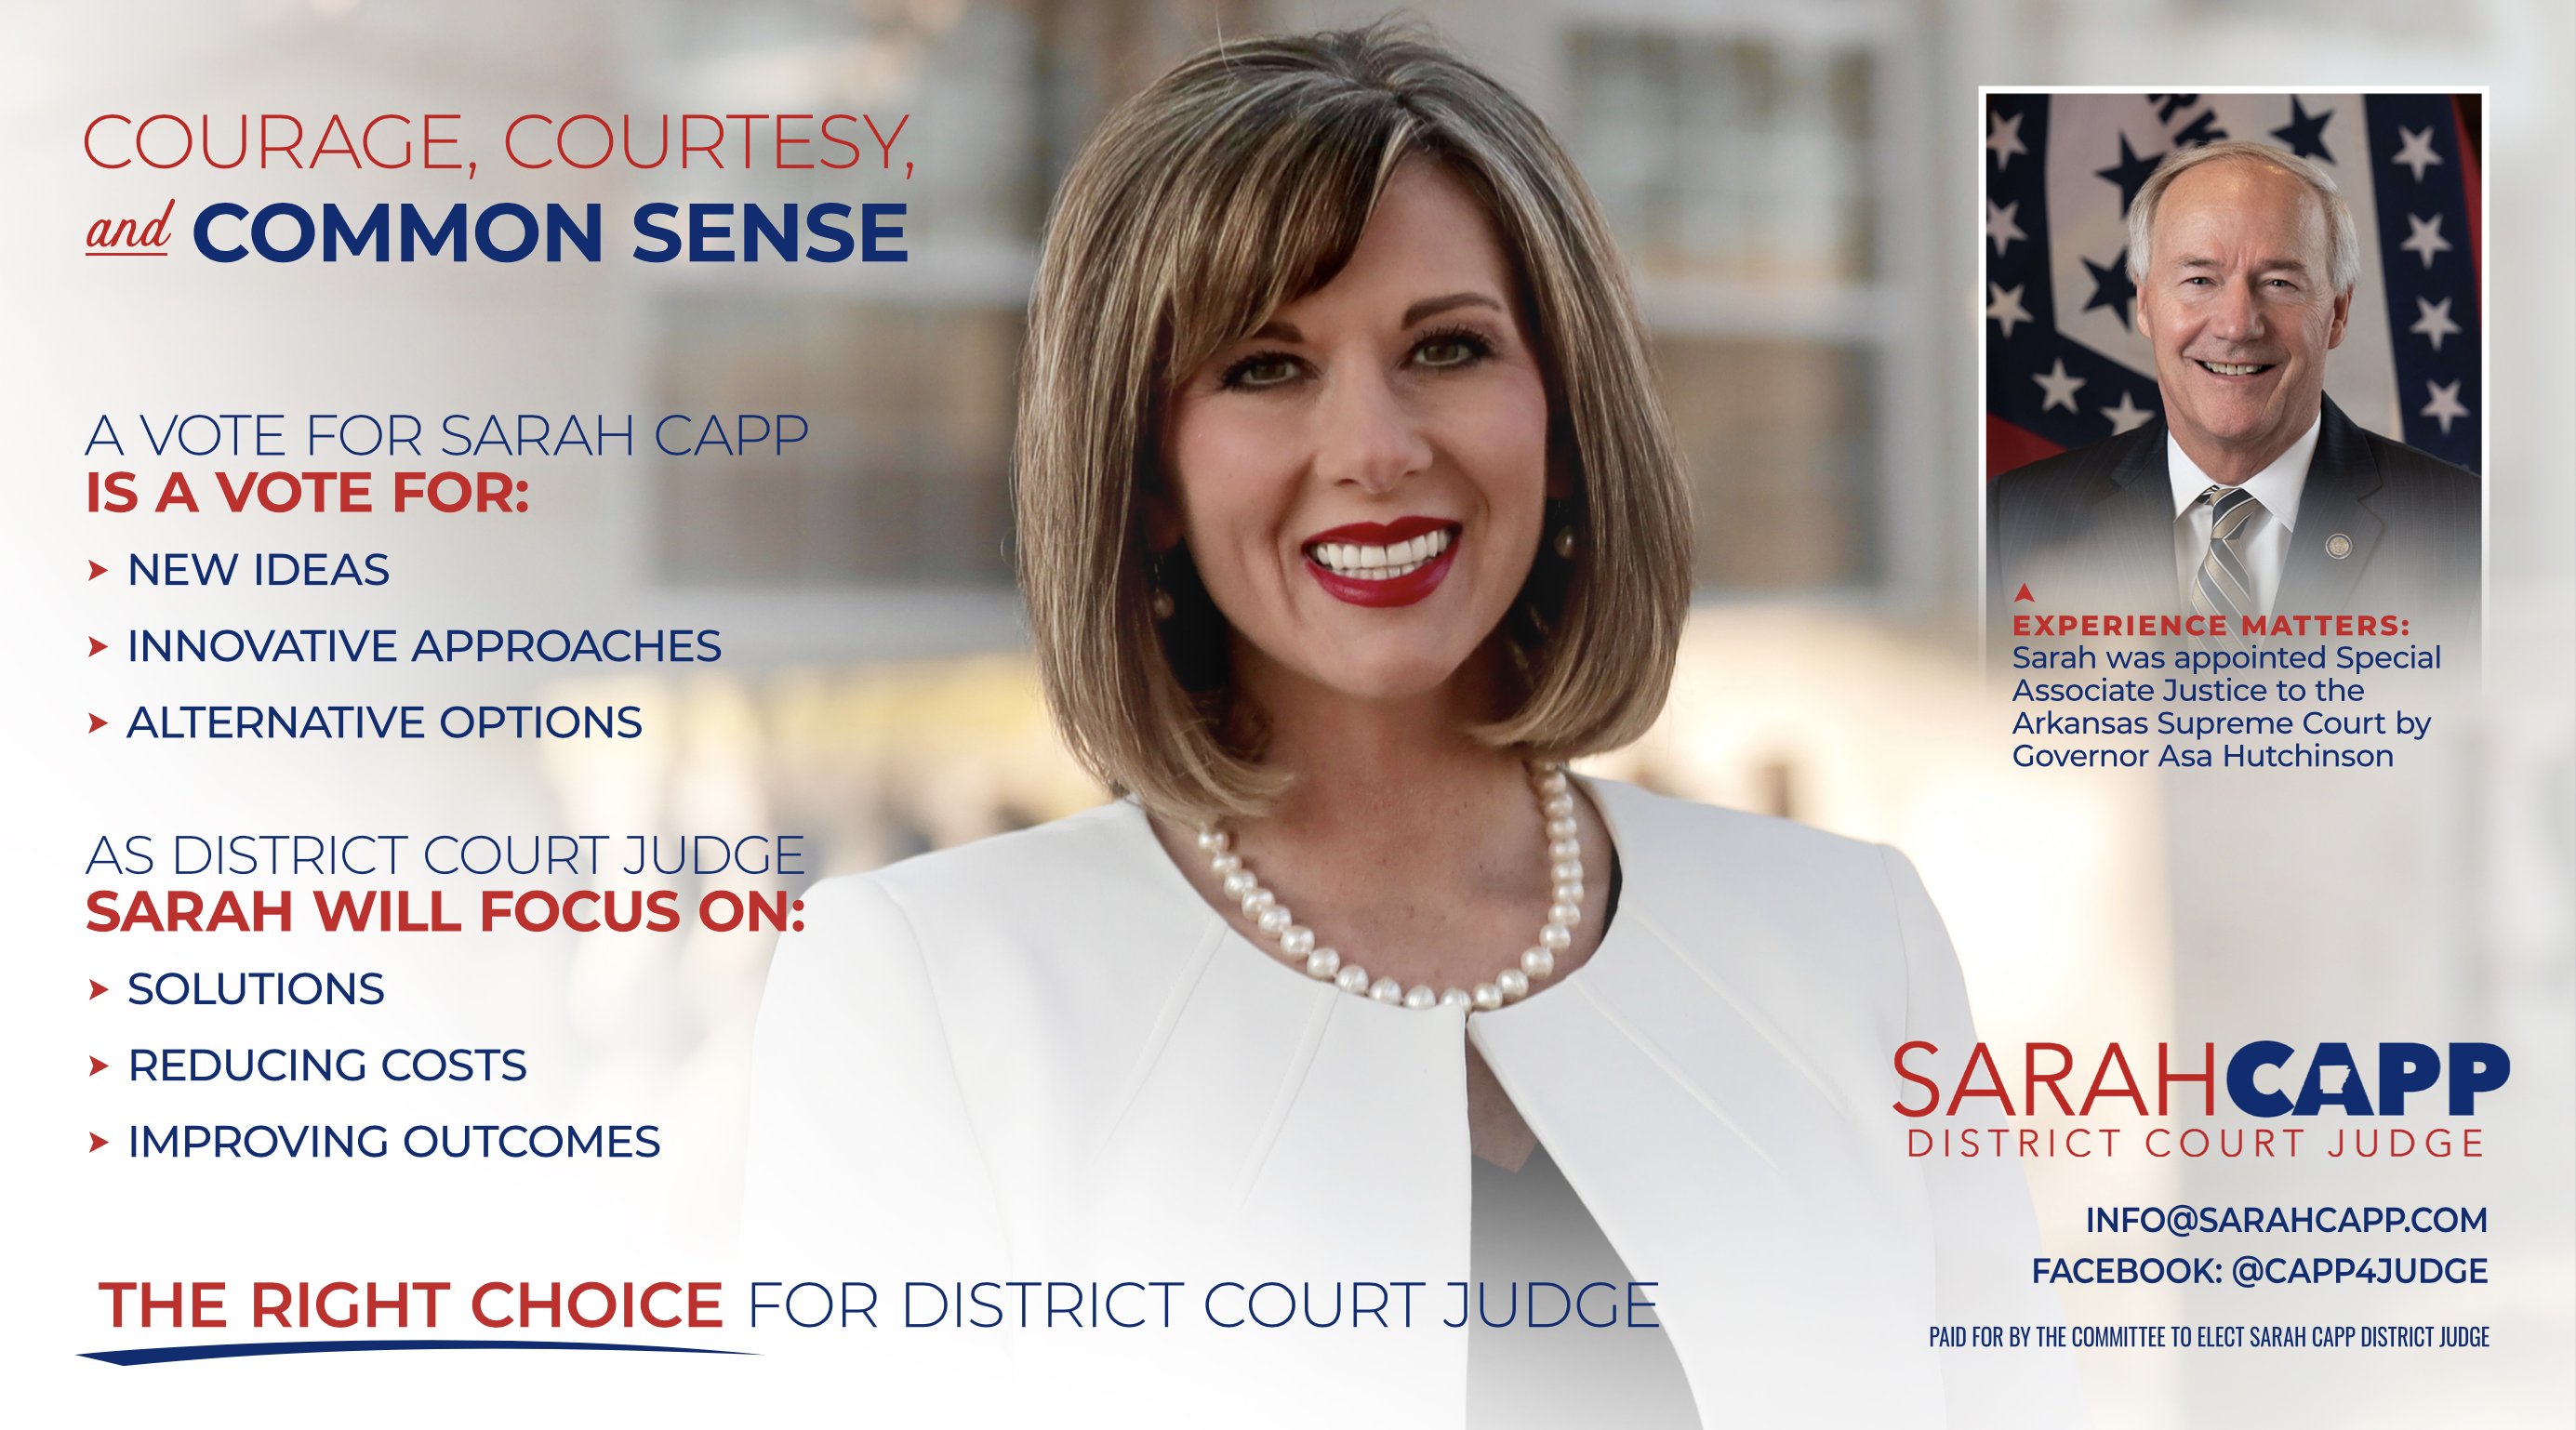 Sarah Capp for District Court